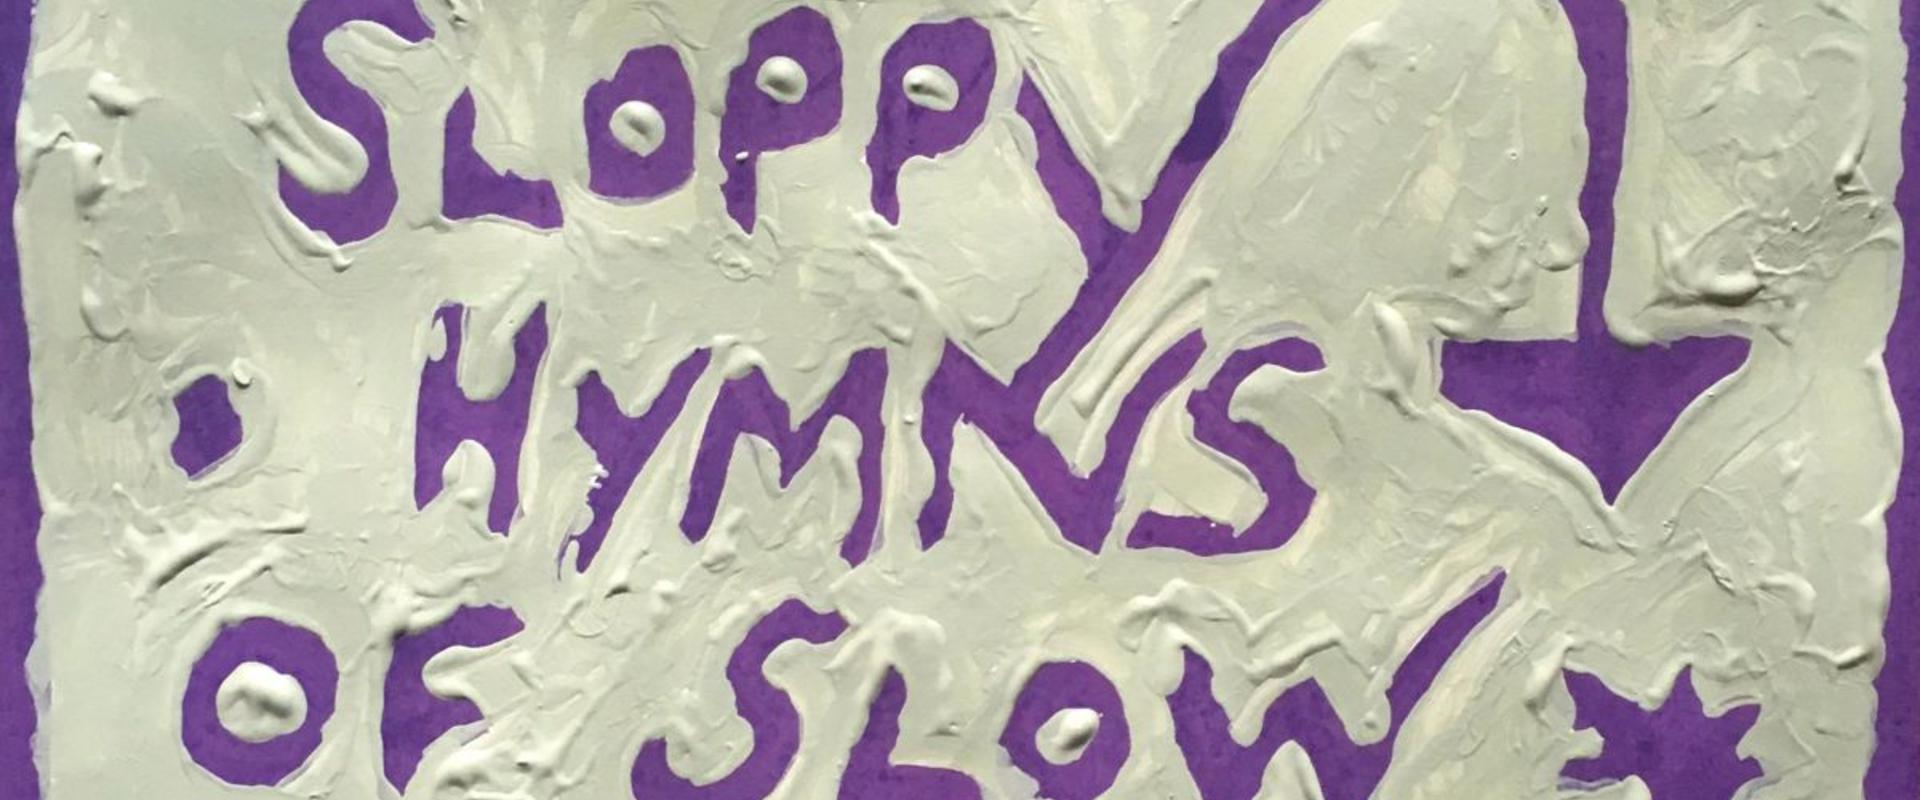 Uli Tsitsos - Sloppy Hymns Of Slow Self-Dissolution